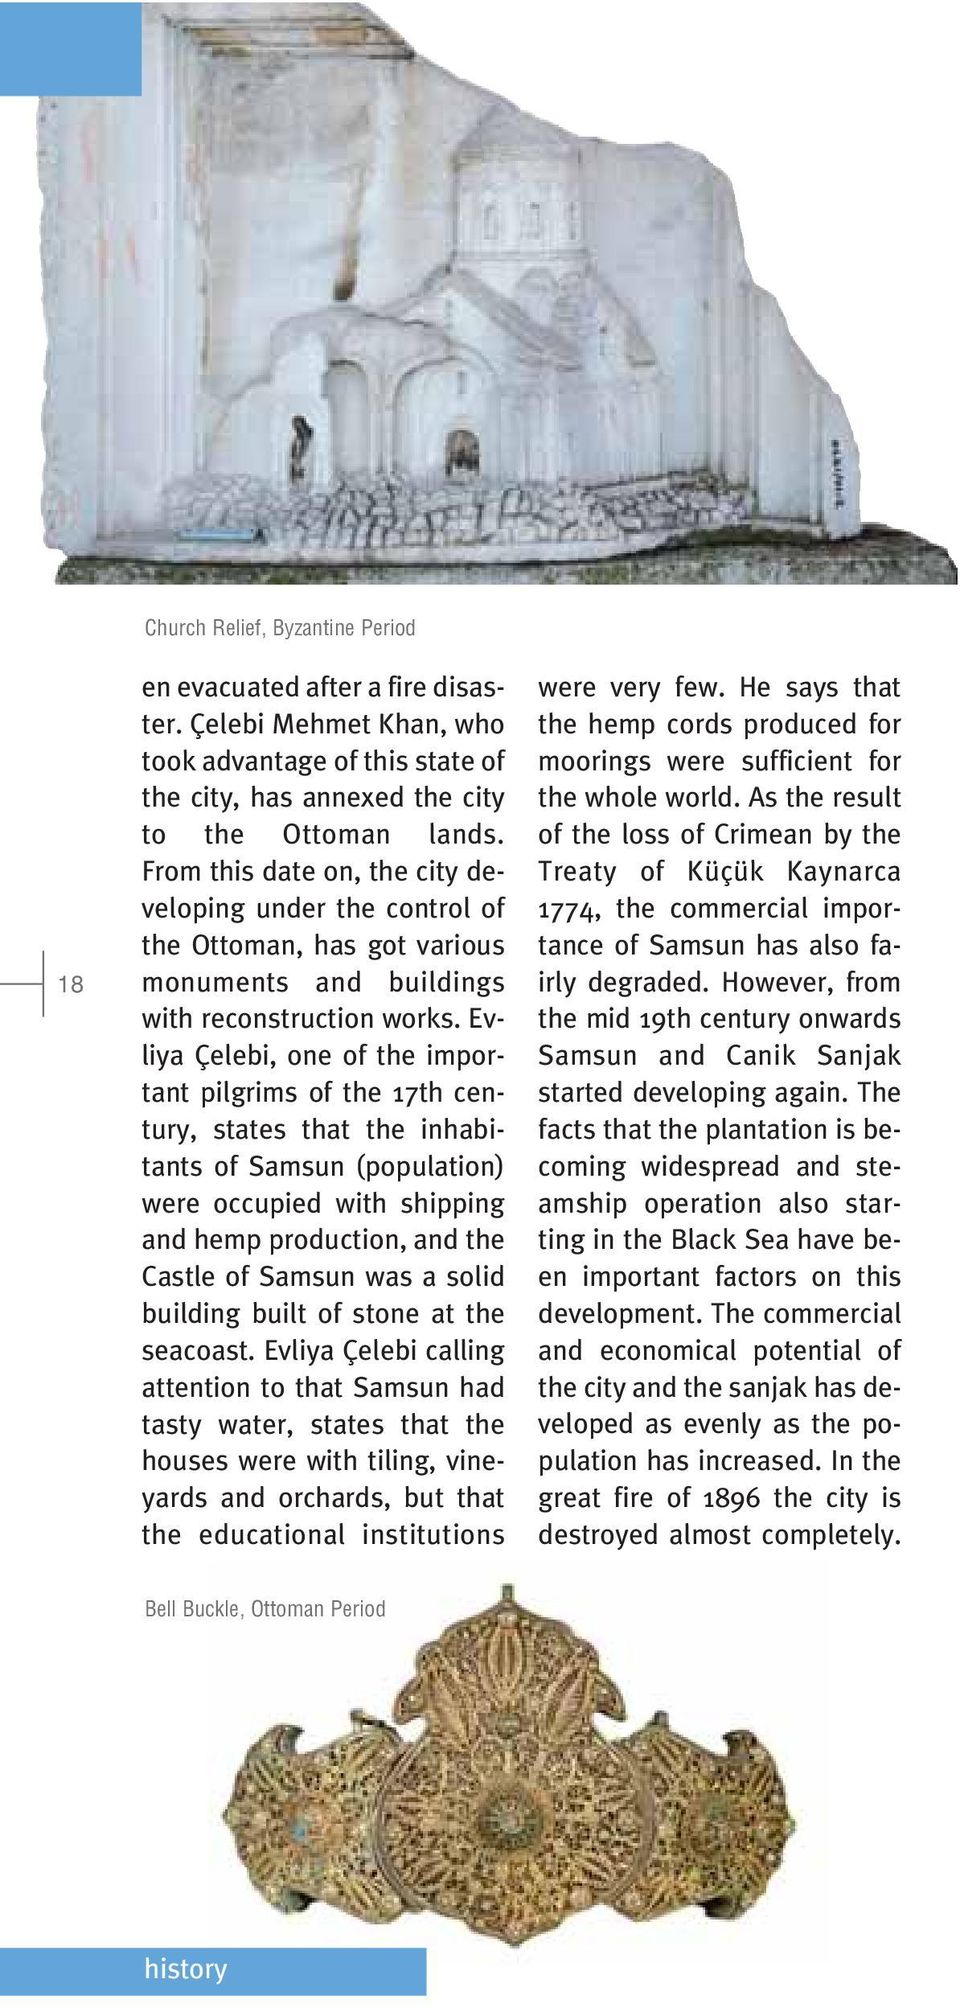 Evliya Çelebi, one of the important pilgrims of the 17th century, states that the inhabitants of Samsun (population) were occupied with shipping and hemp production, and the Castle of Samsun was a